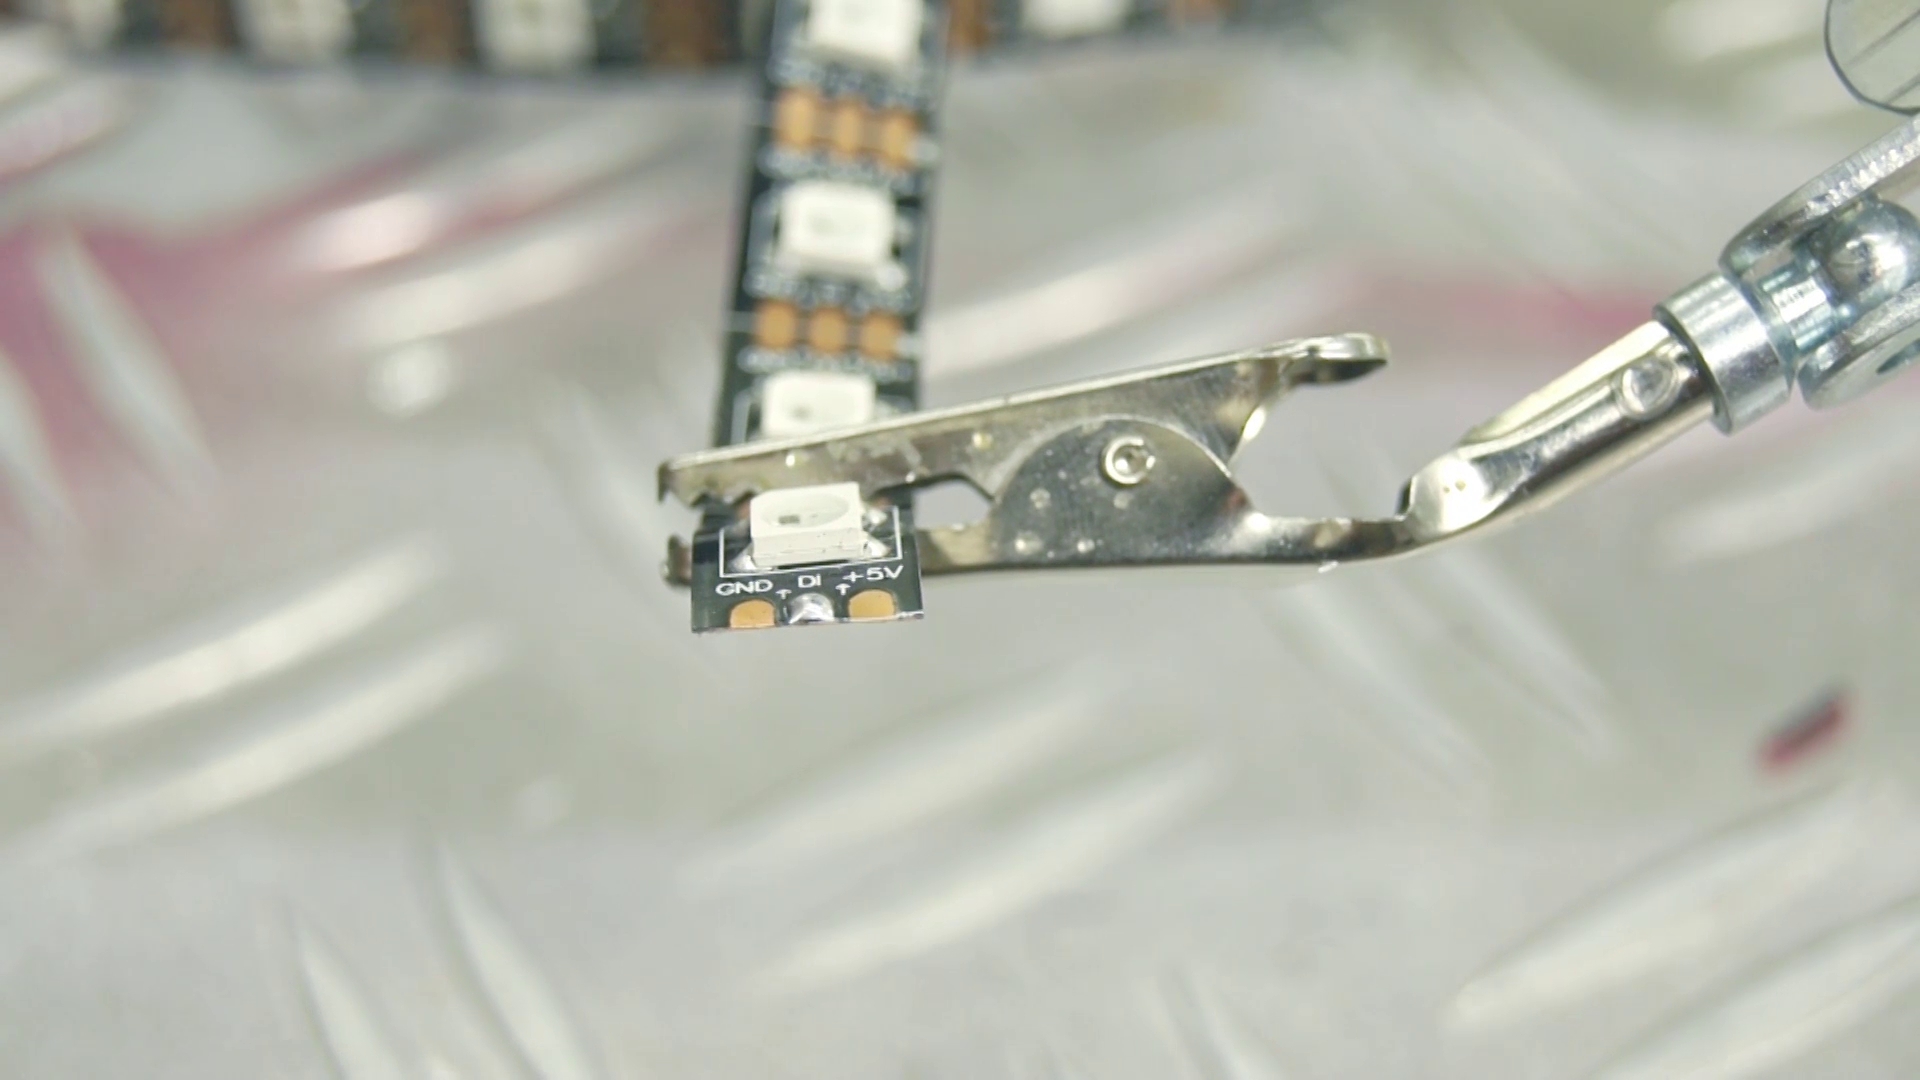 Picture of I Mean, This Is the Last Electronics Part